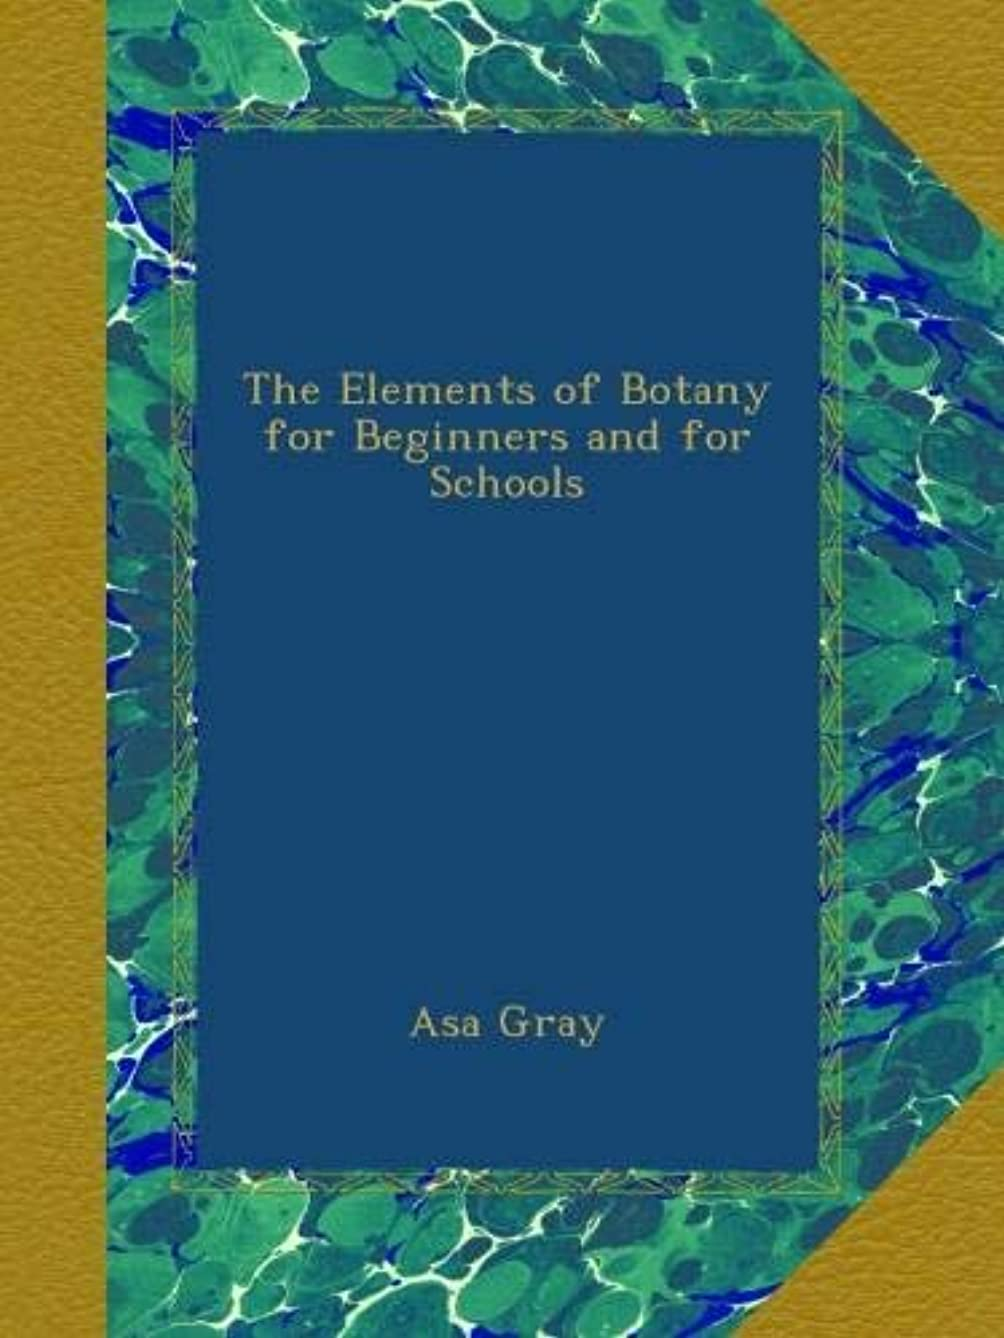 症候群ルーフ価格The Elements of Botany for Beginners and for Schools